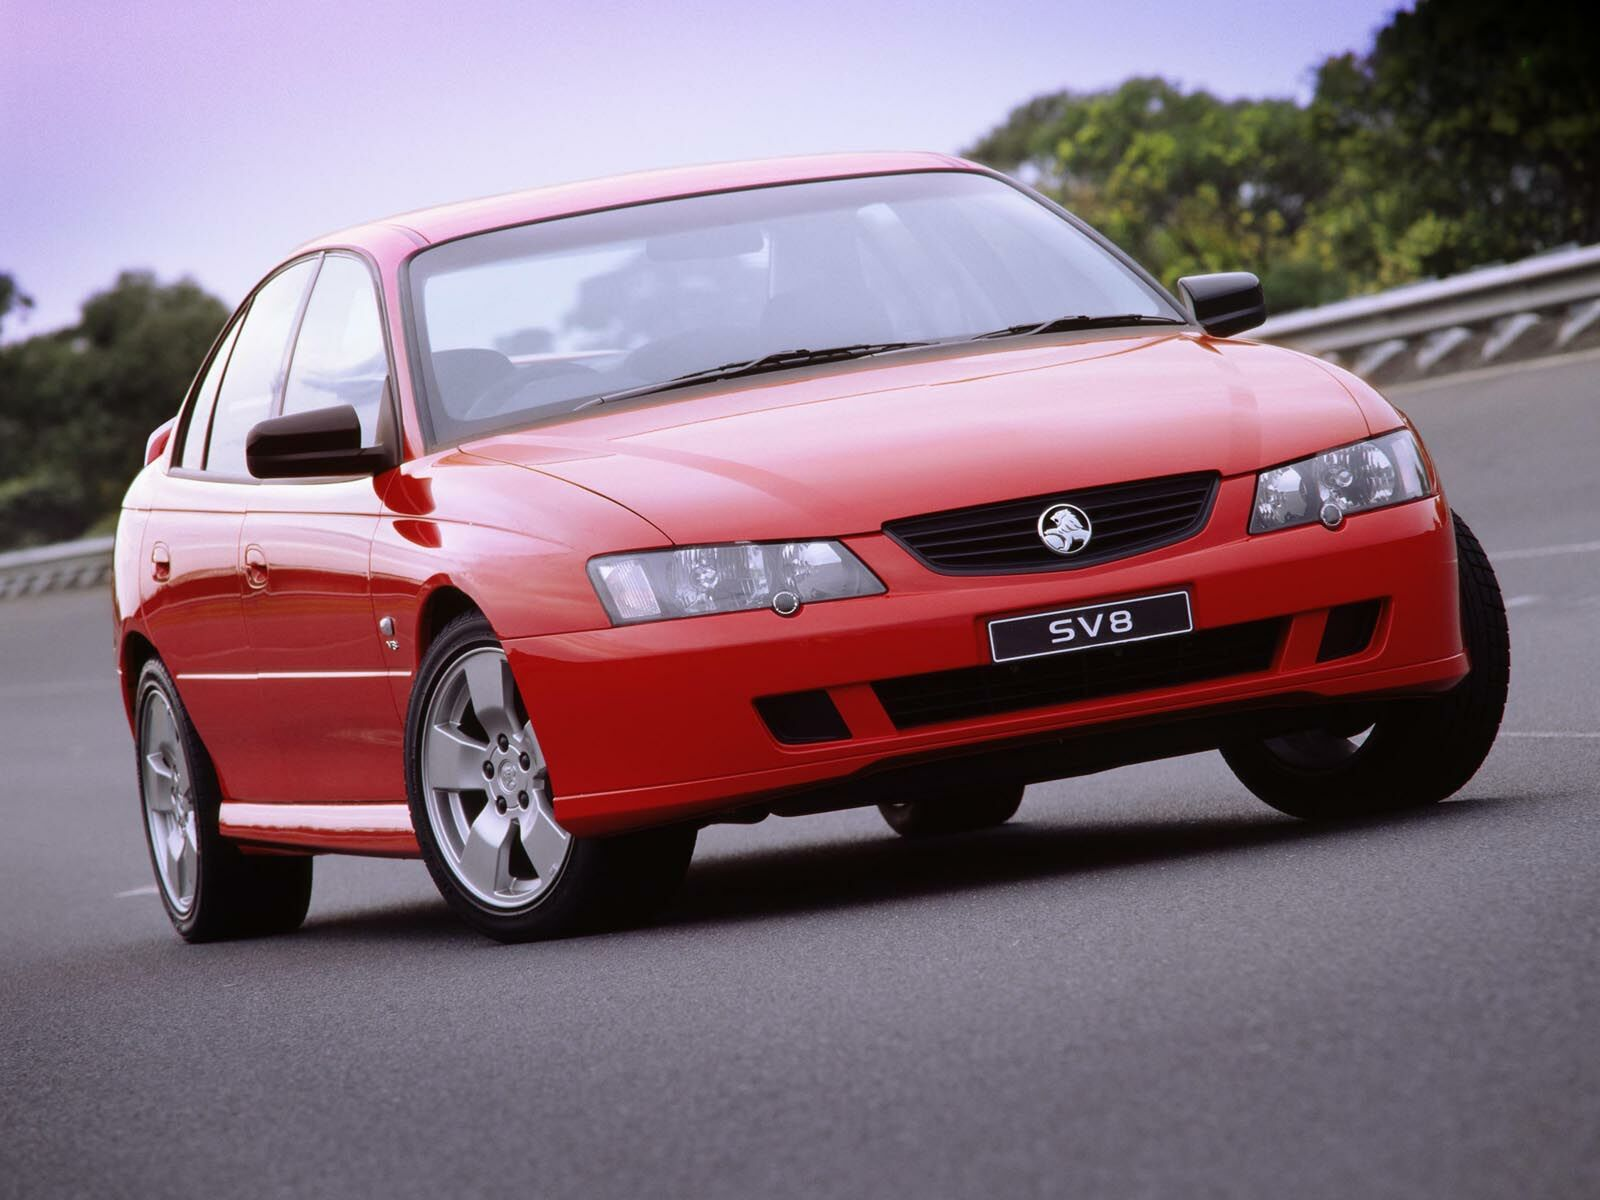 Cars Pictures & Information: Holden Commodore